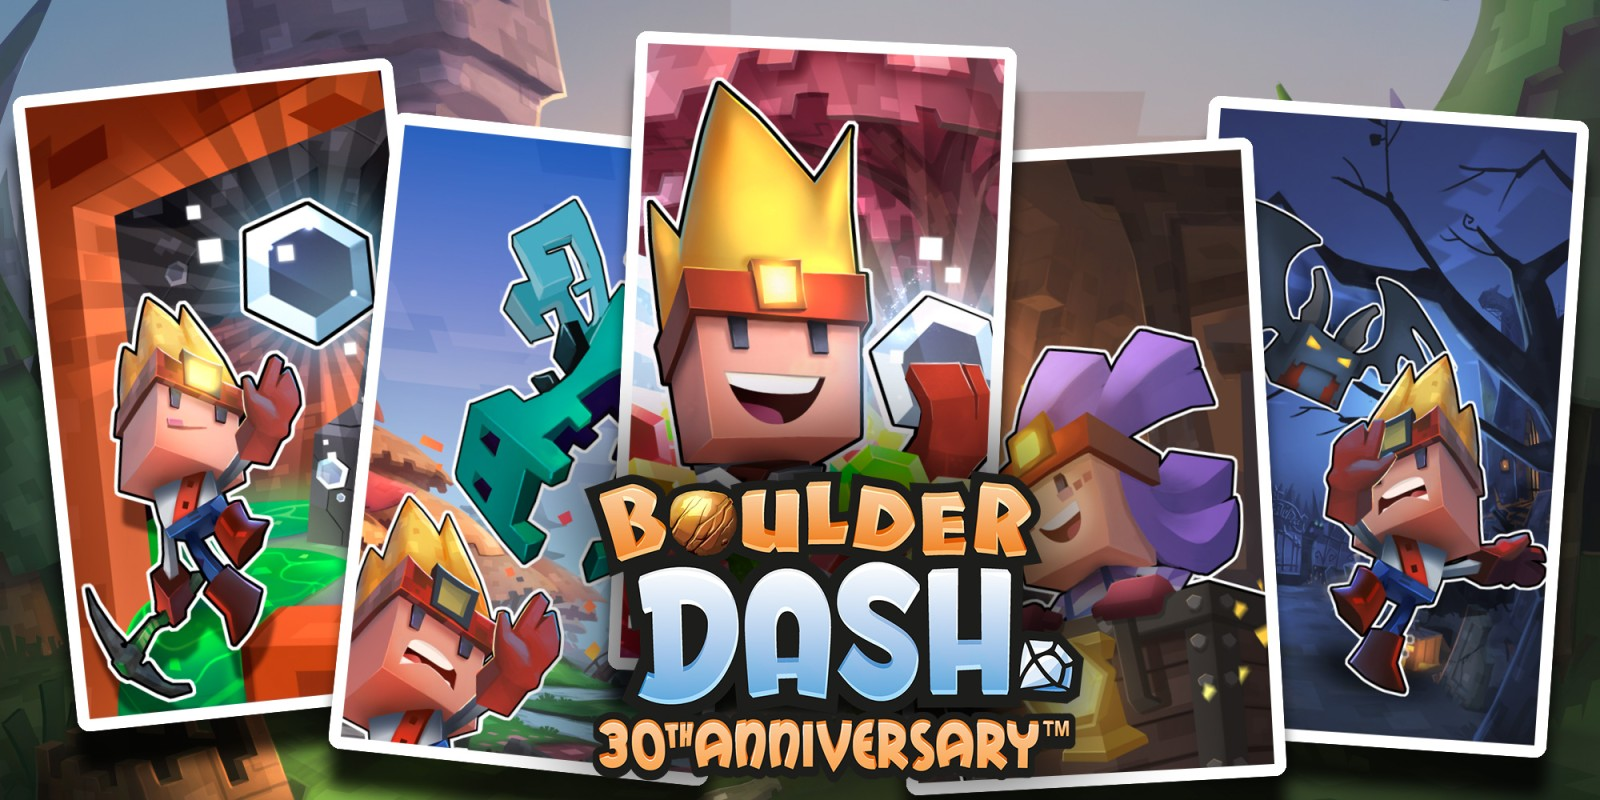 Boulder Dash® 30th Anniversary™